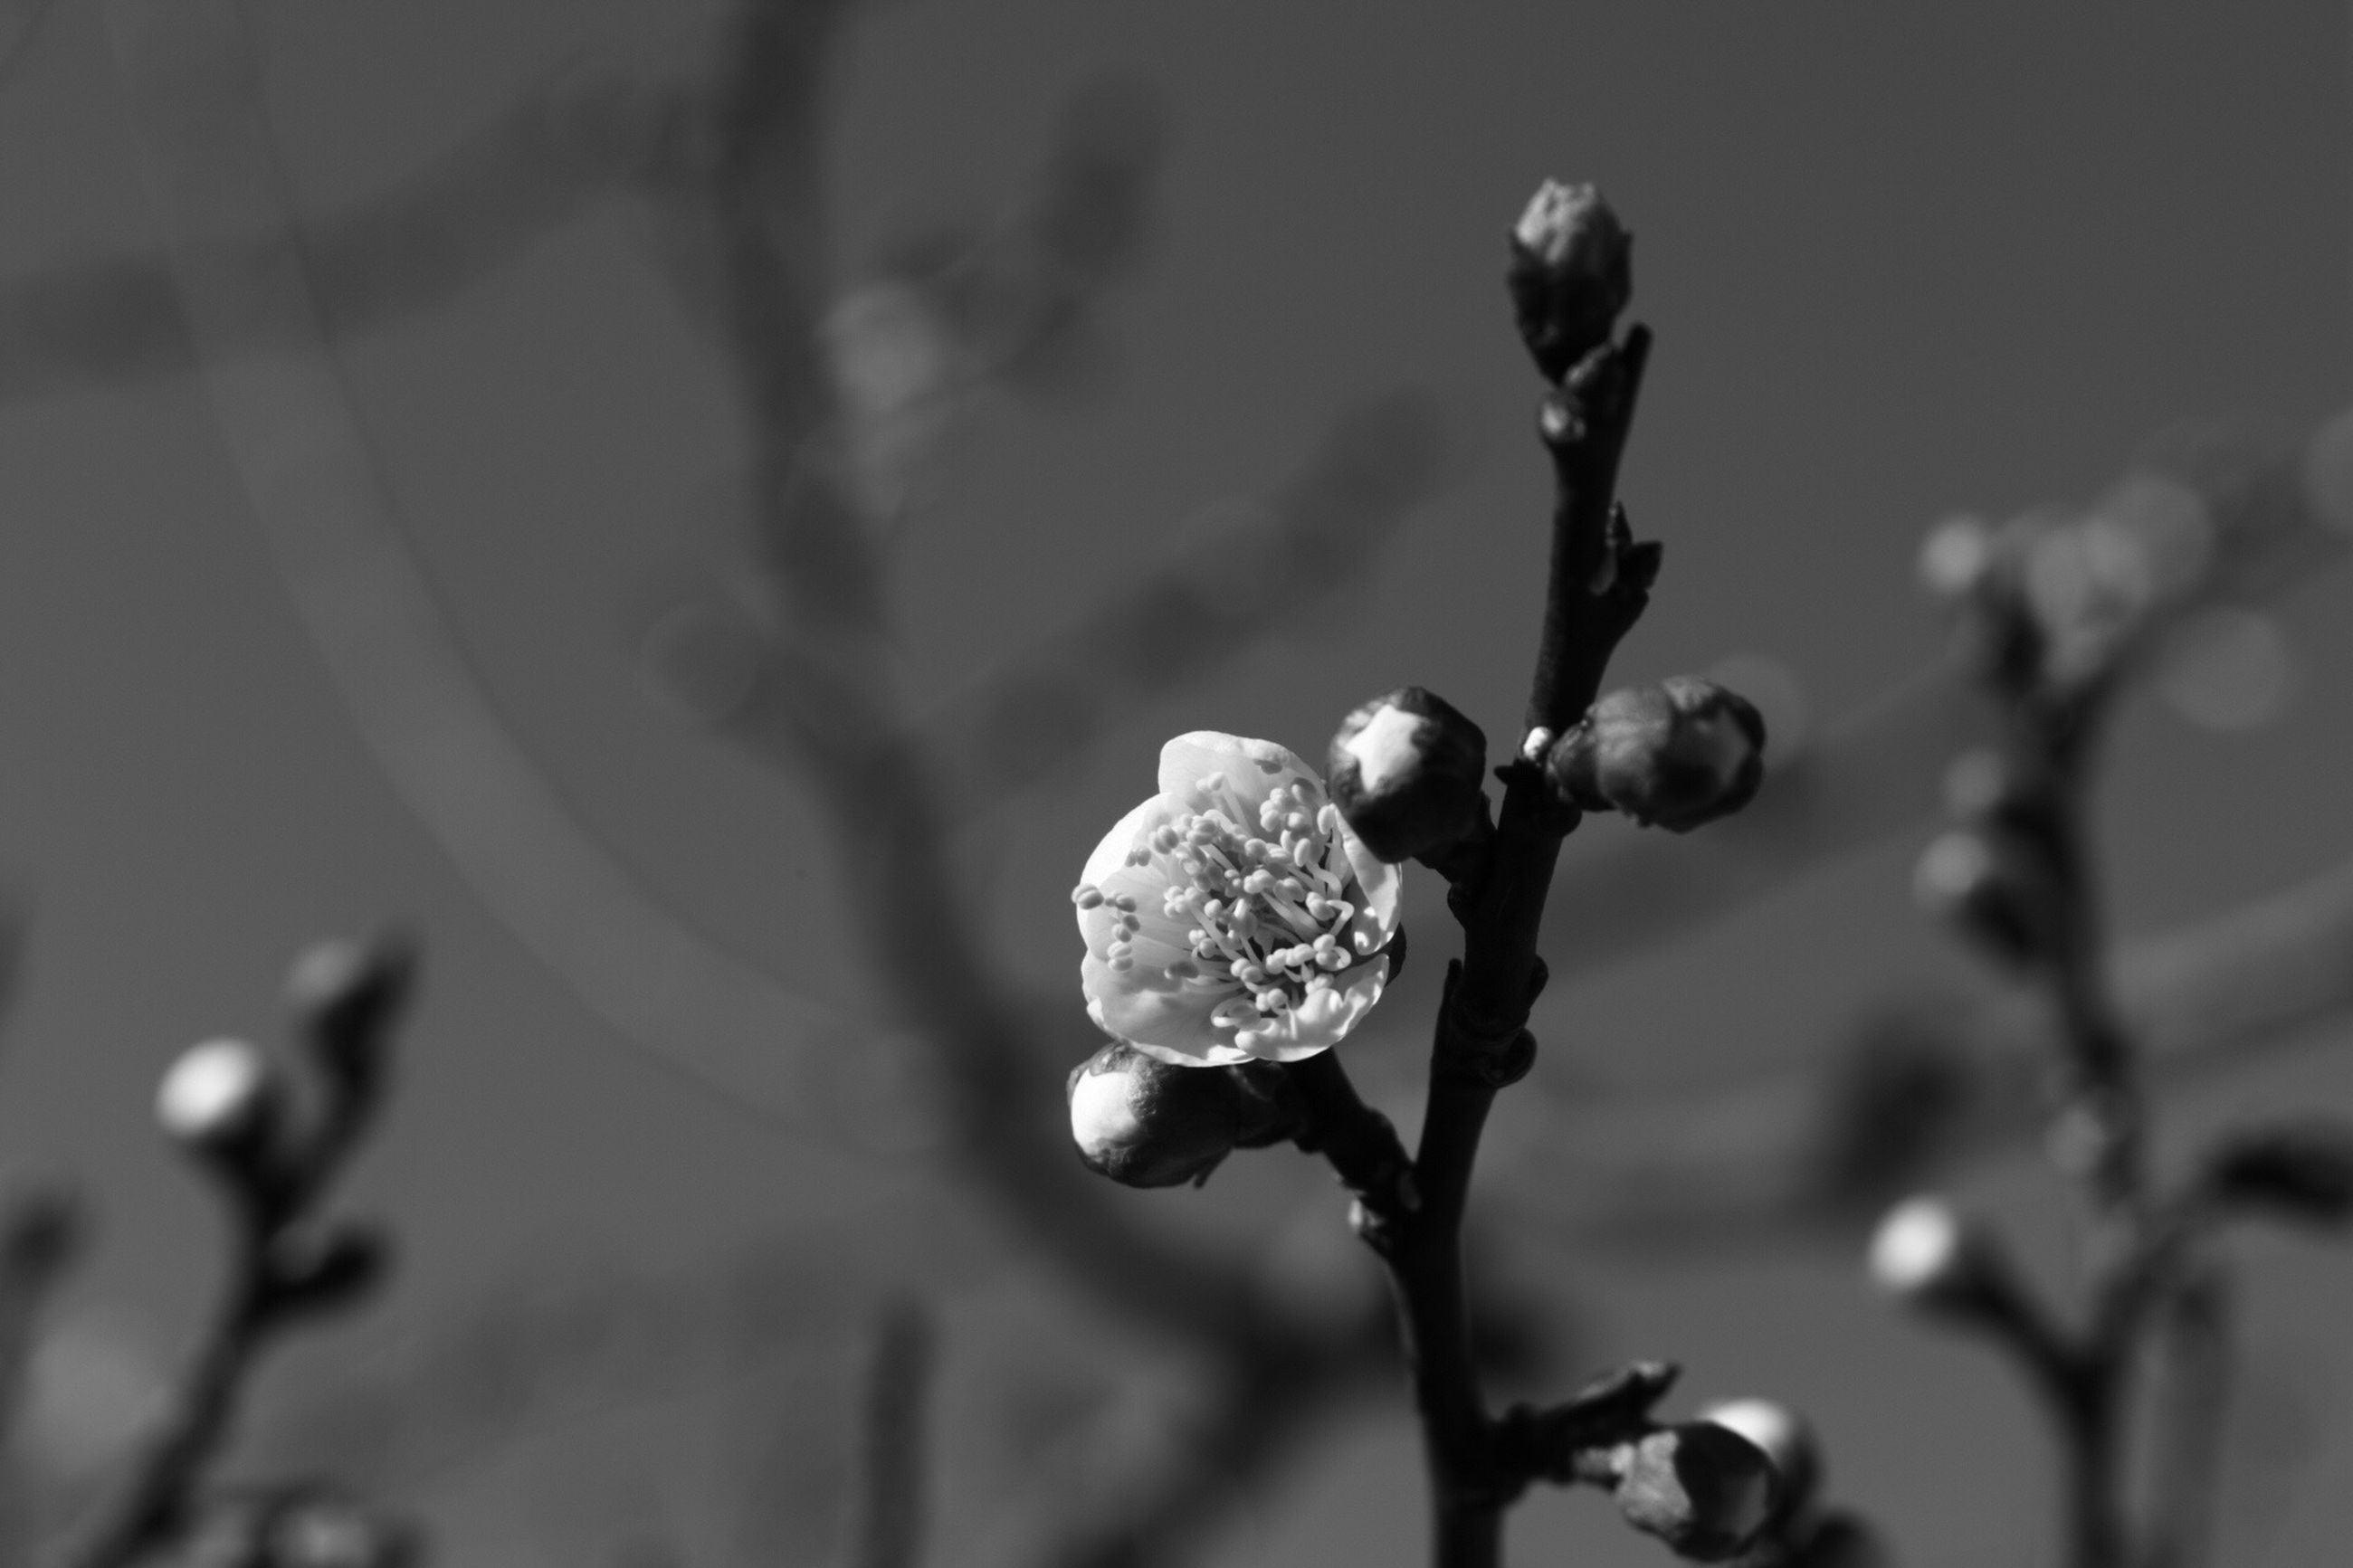 focus on foreground, close-up, winter, branch, cold temperature, growth, frozen, nature, snow, season, freshness, twig, fragility, plant, beauty in nature, weather, tree, selective focus, stem, bud